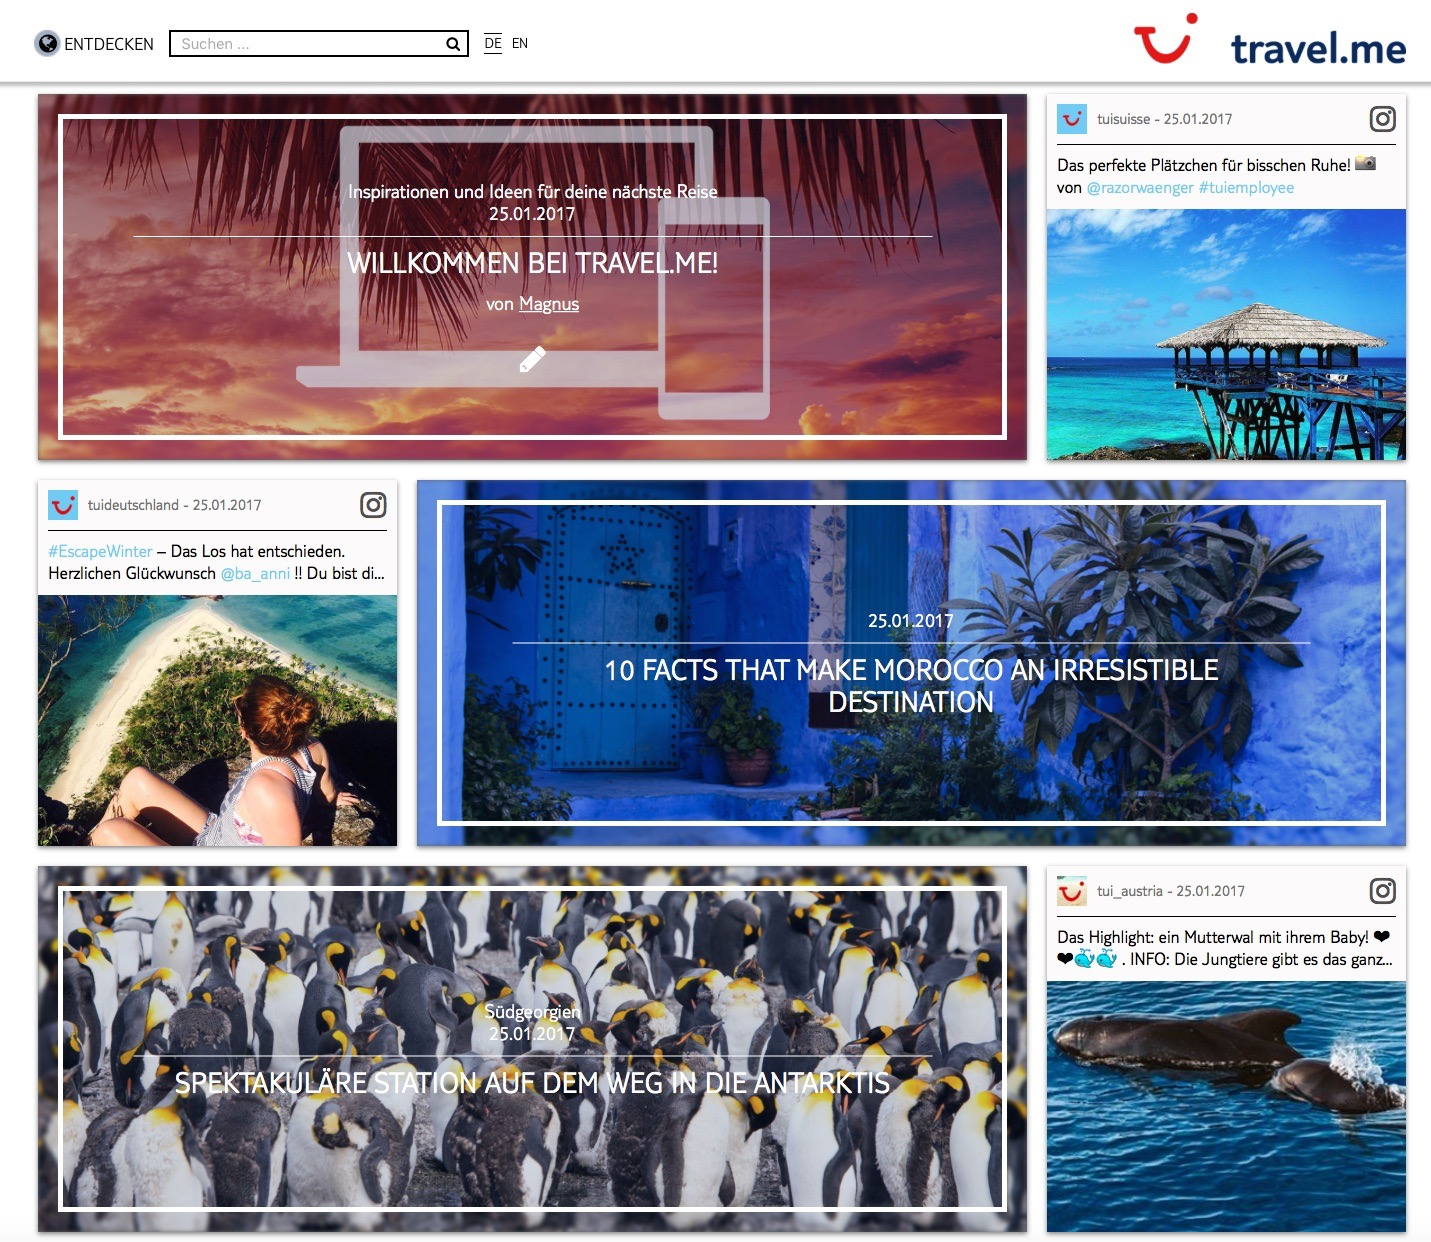 Travel.me TUI Content Marketing